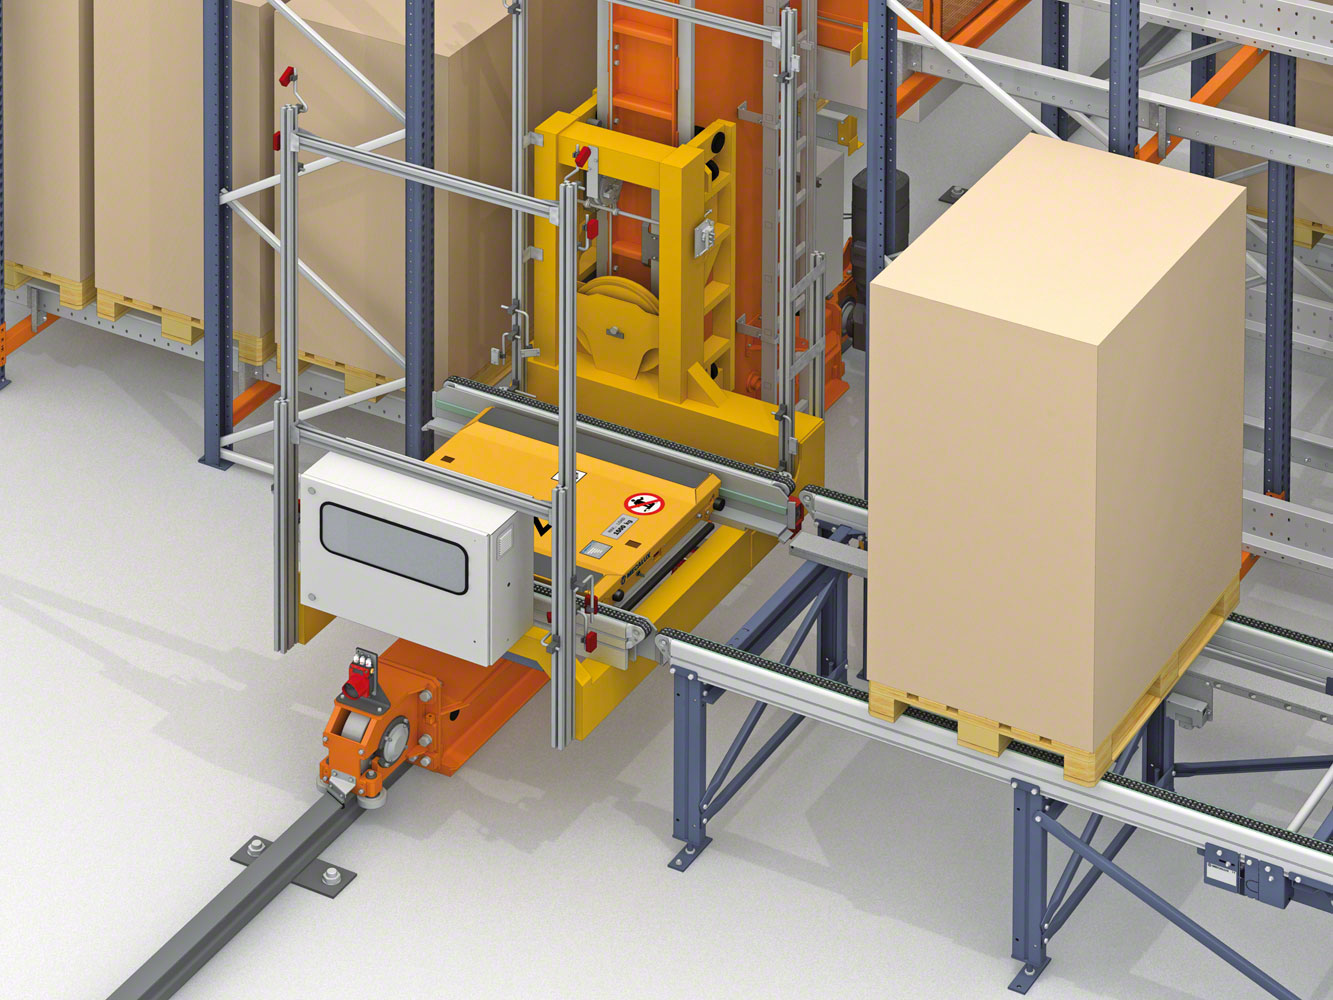 Mecalux will equip two Lanxess warehouses in Germany